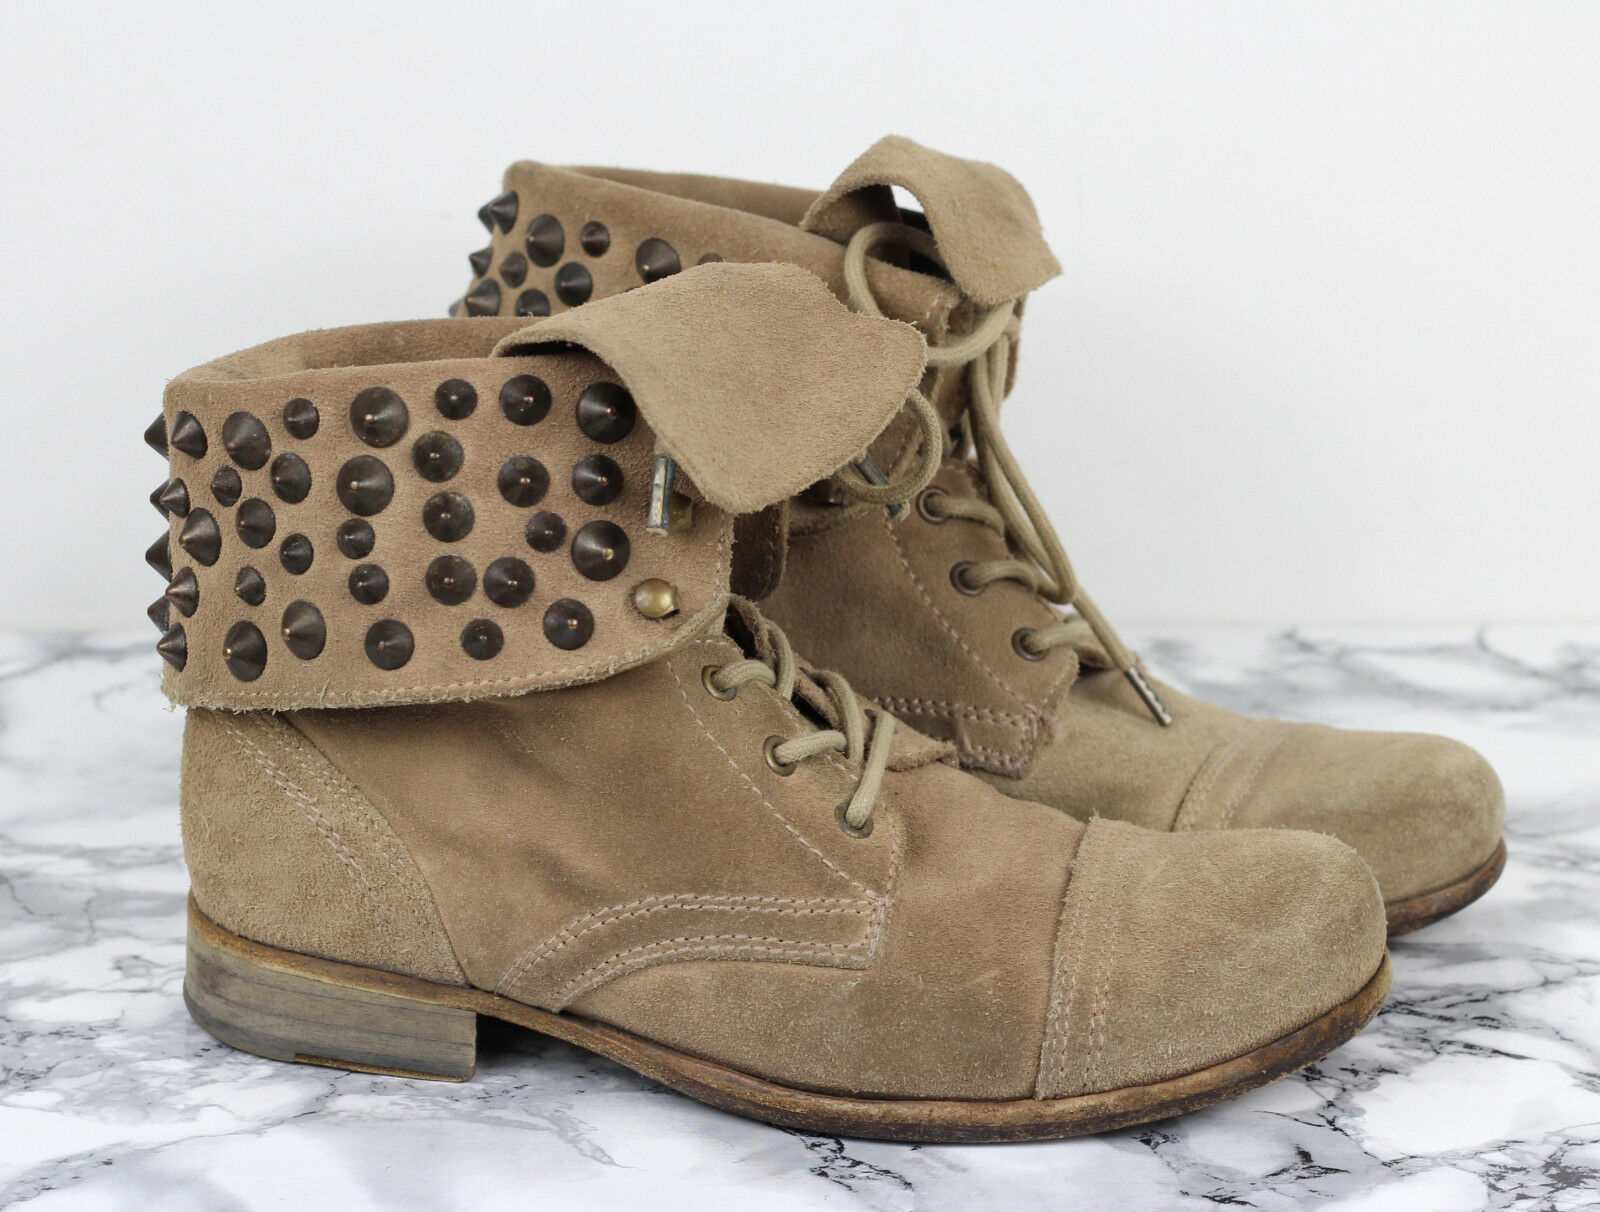 ALL SAINTS Beige Suede Studded Studded Suede Leder Military Combat Stiefel, Größe EU 38 / UK 5 08f0d8